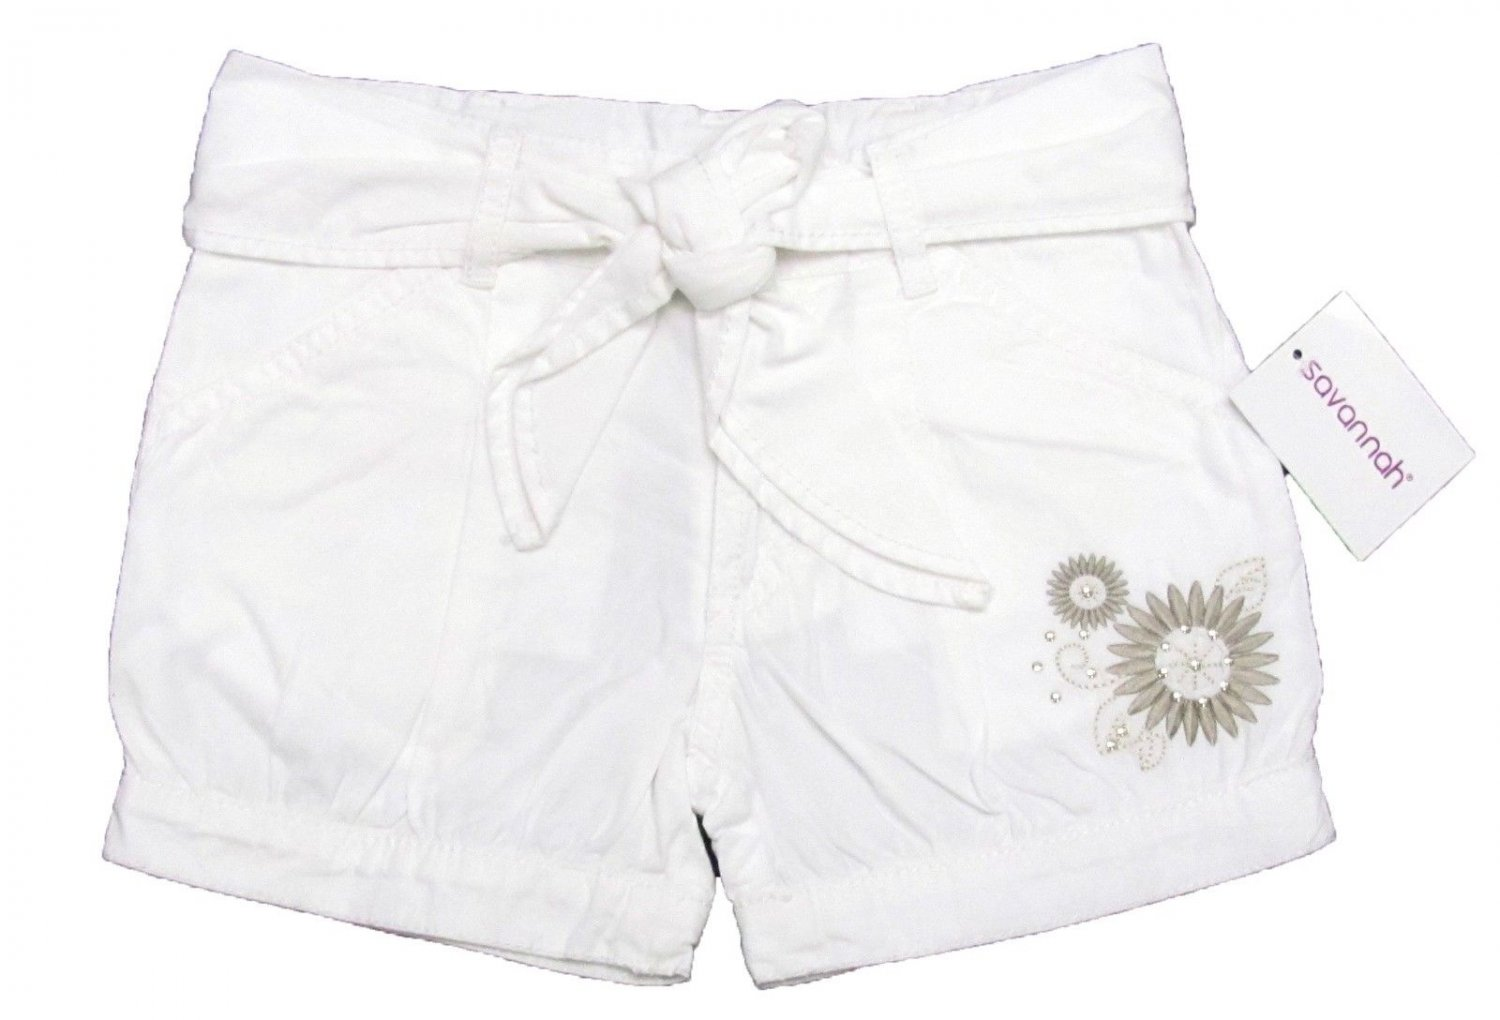 Savannah Girls size 5 White Belted Shorts with Beige Floral Embroidery Kids New